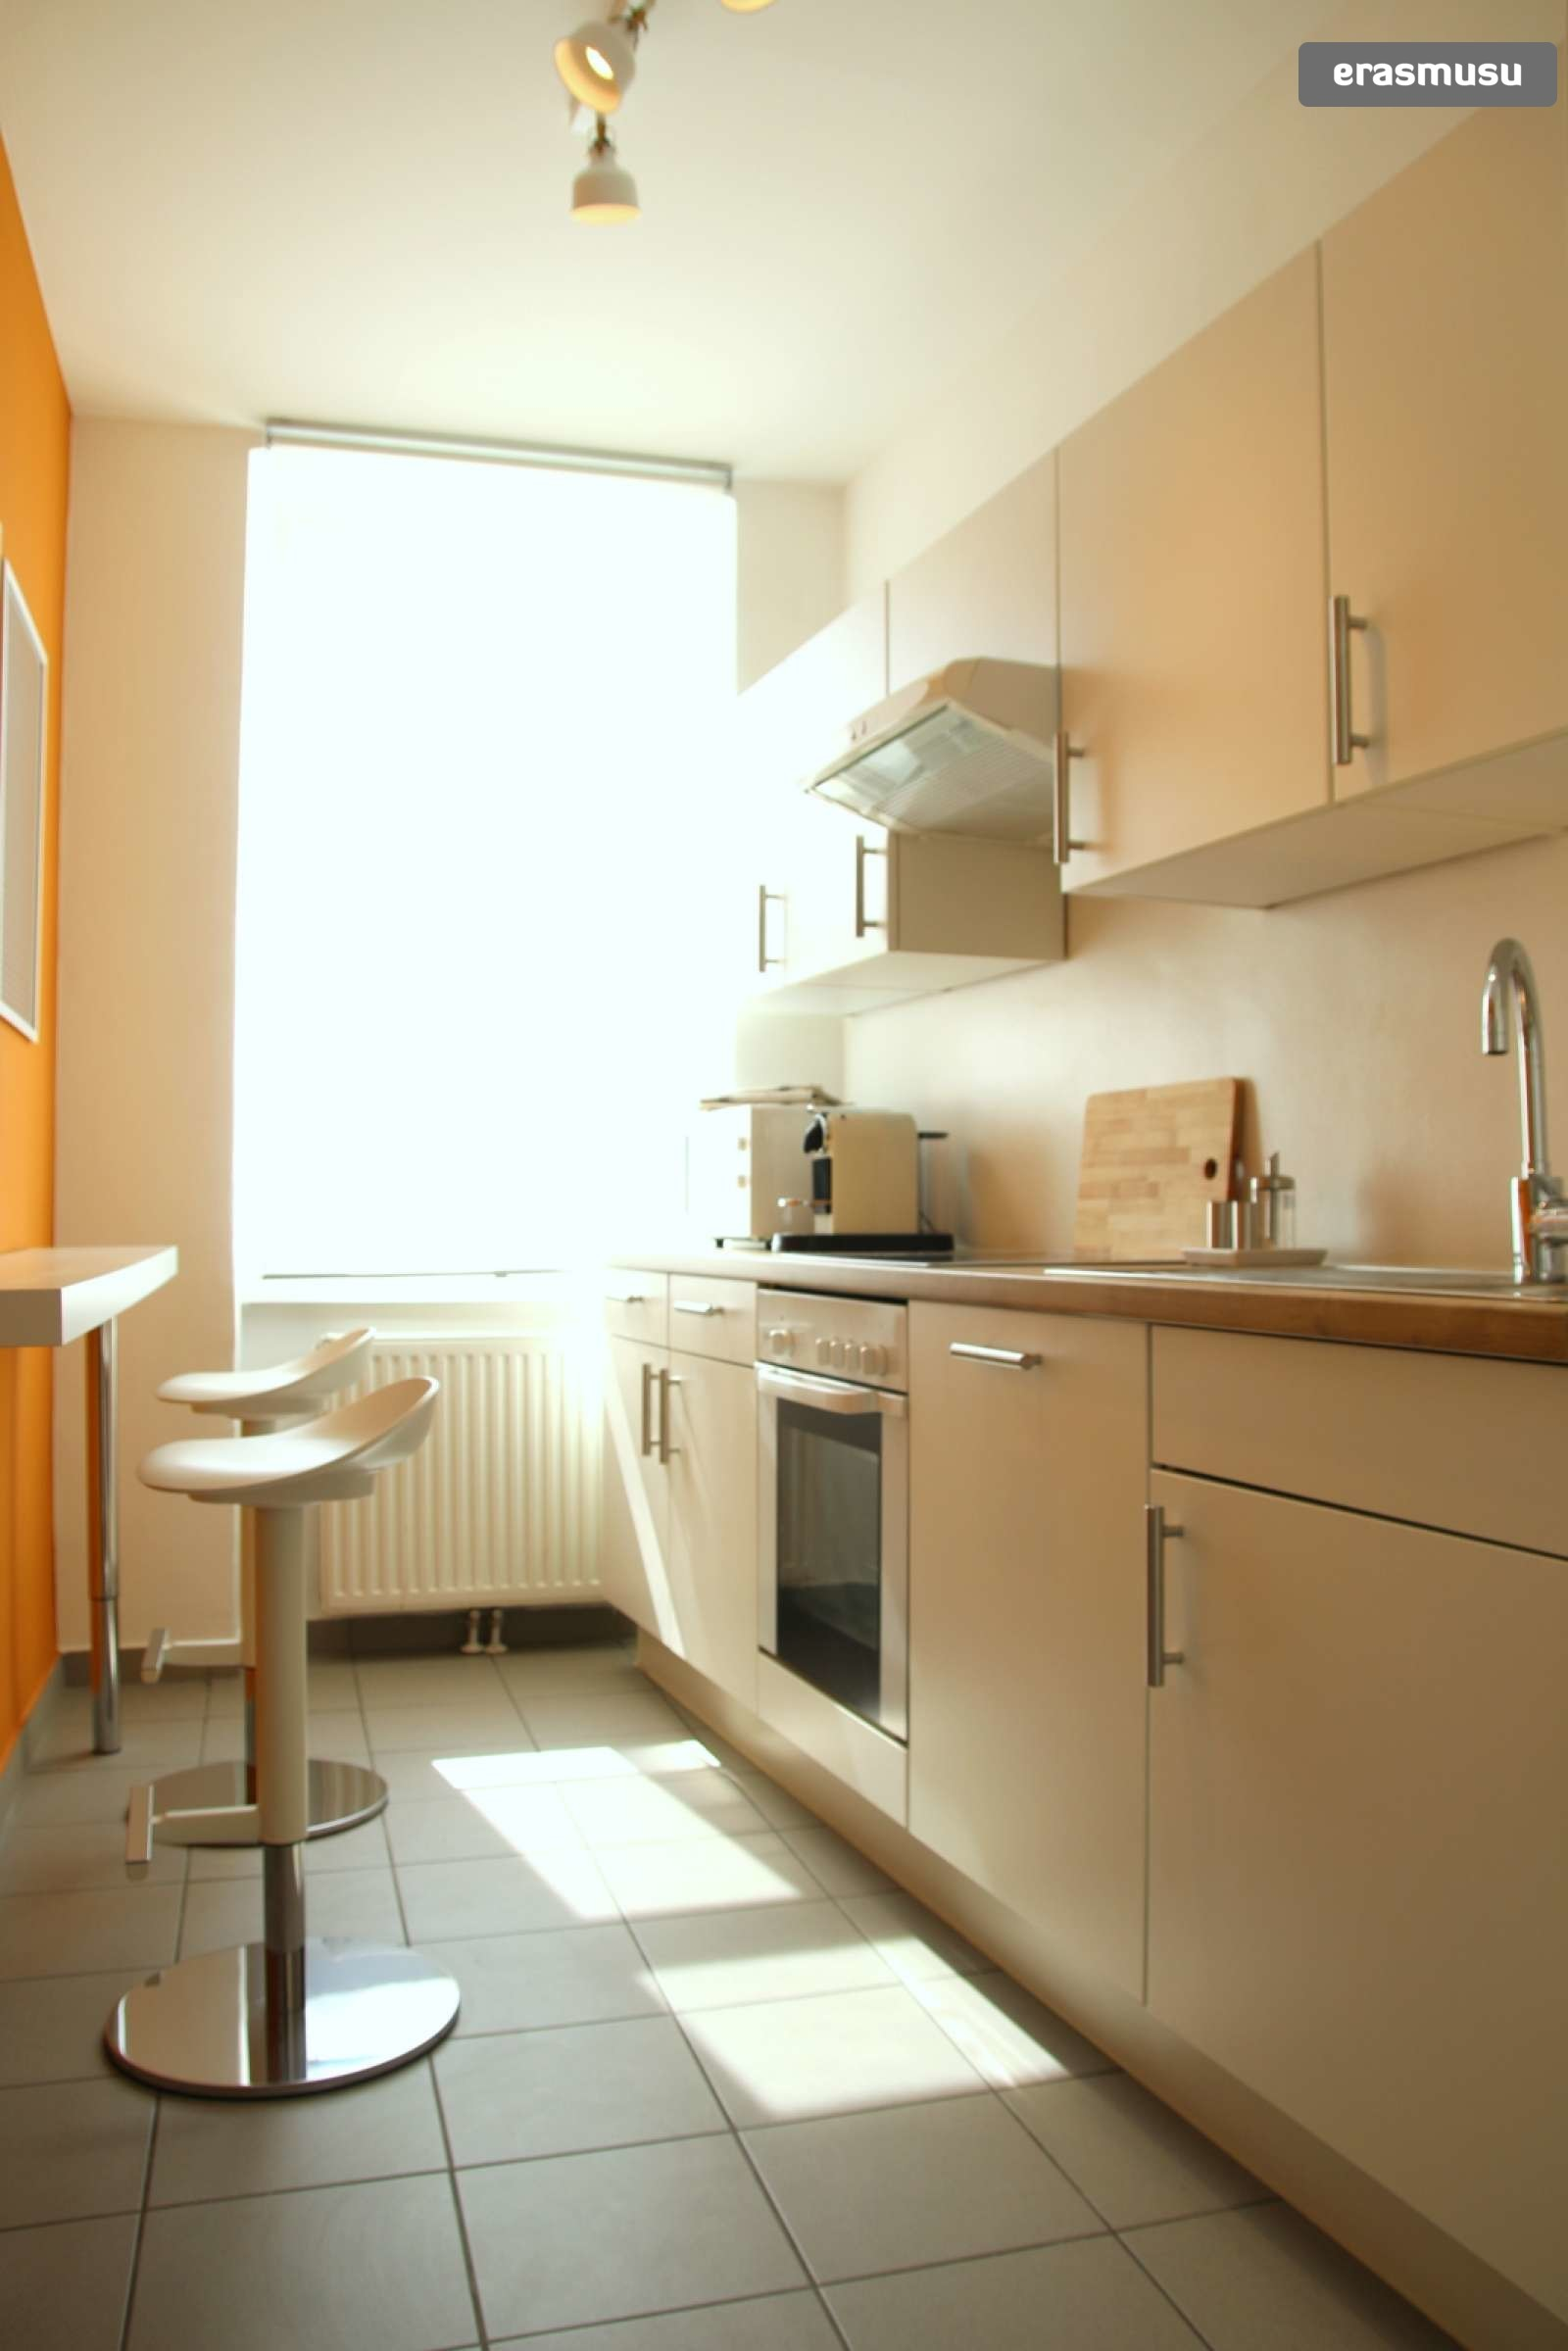 lovely-studio-apartment-rent-wahring-da304b54bd1abe8a716bec22d17